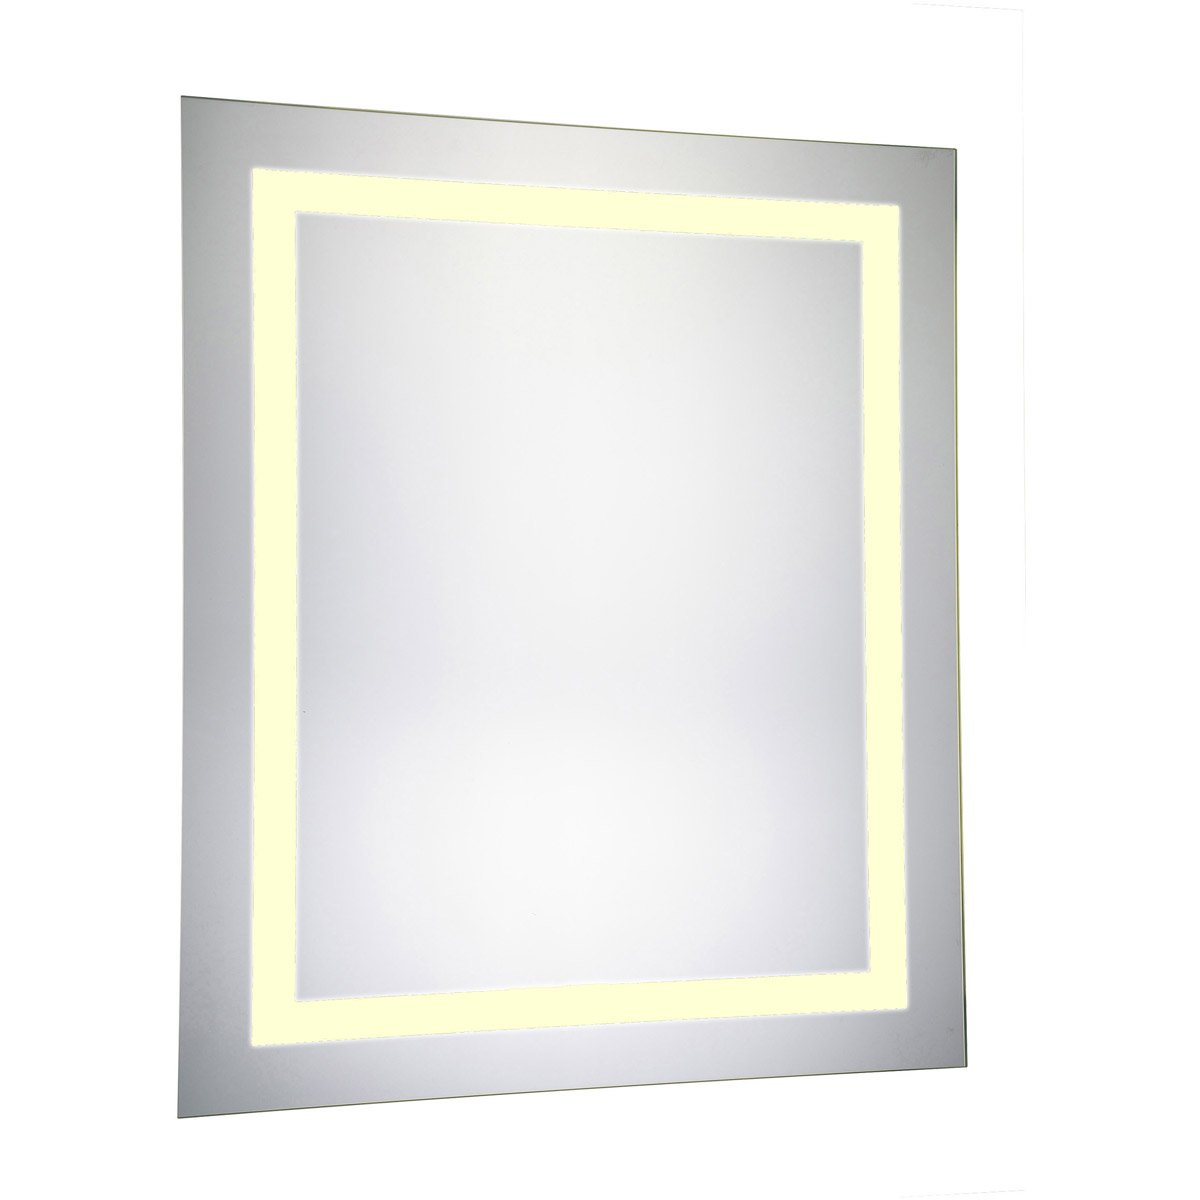 Nova 30 X 20 Hardwired Led Wall Mirror - Glossy White Finish (Mre-6011) Led Mirror